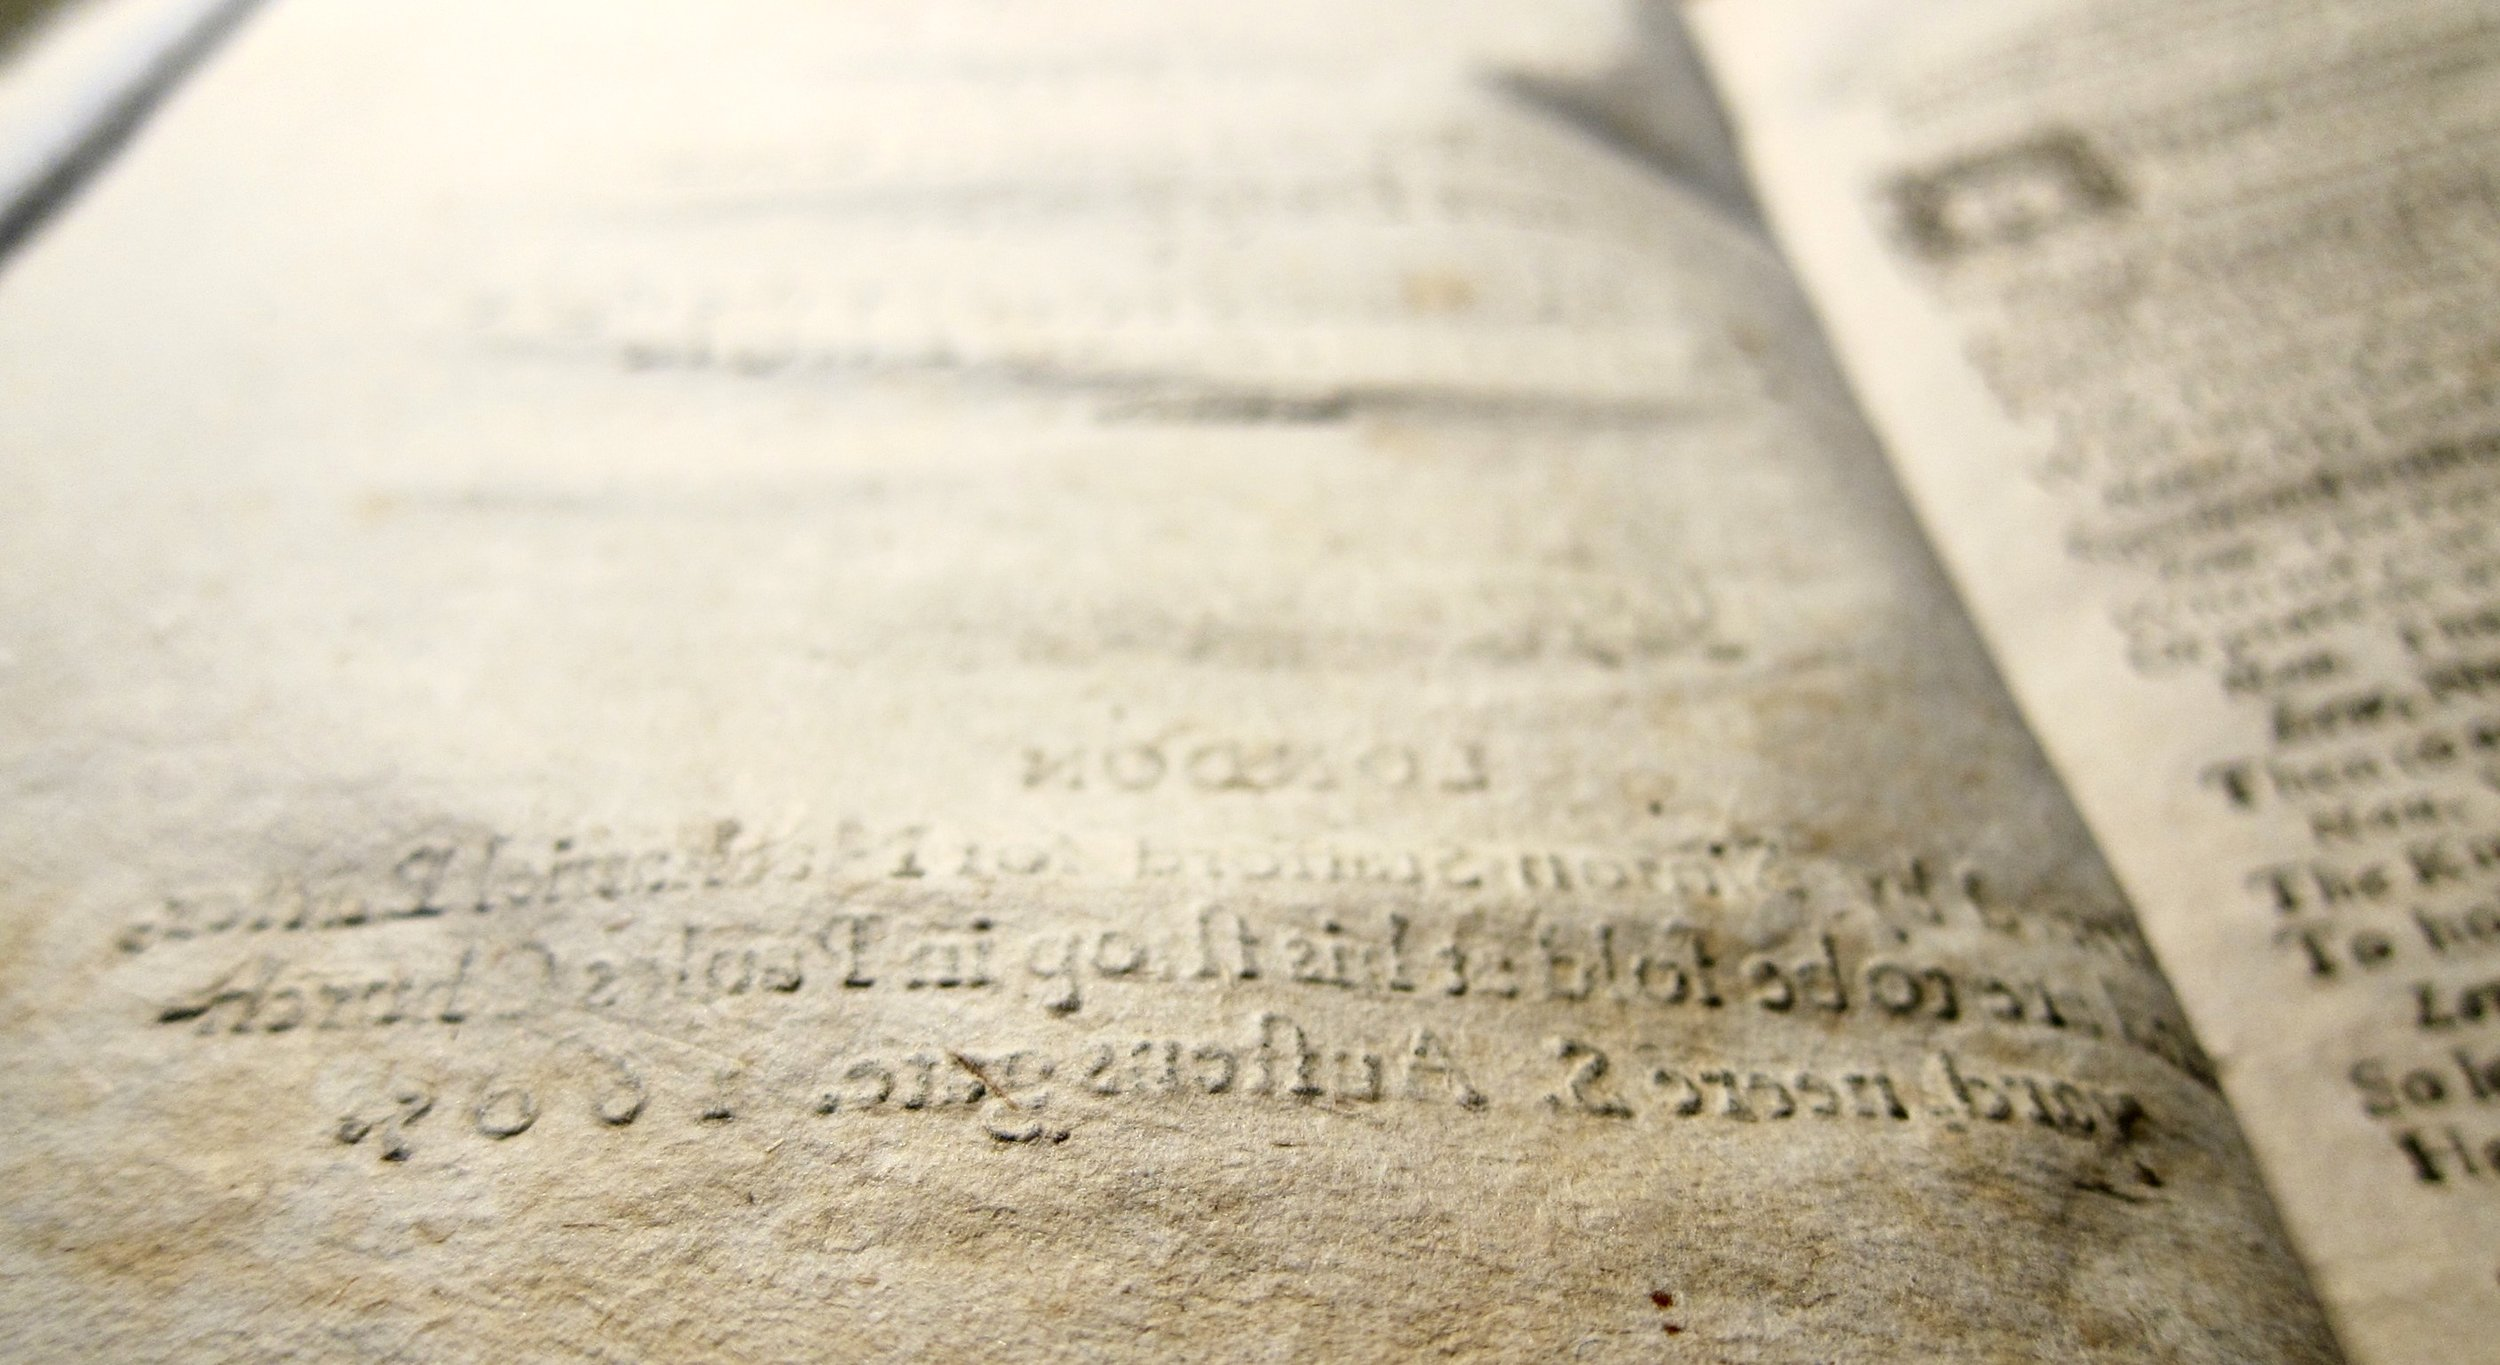 The deep bite of type on the recto of the title page of  The Trial of Chivalry  (1605), STC 24935a, Folger Shakespeare Library.